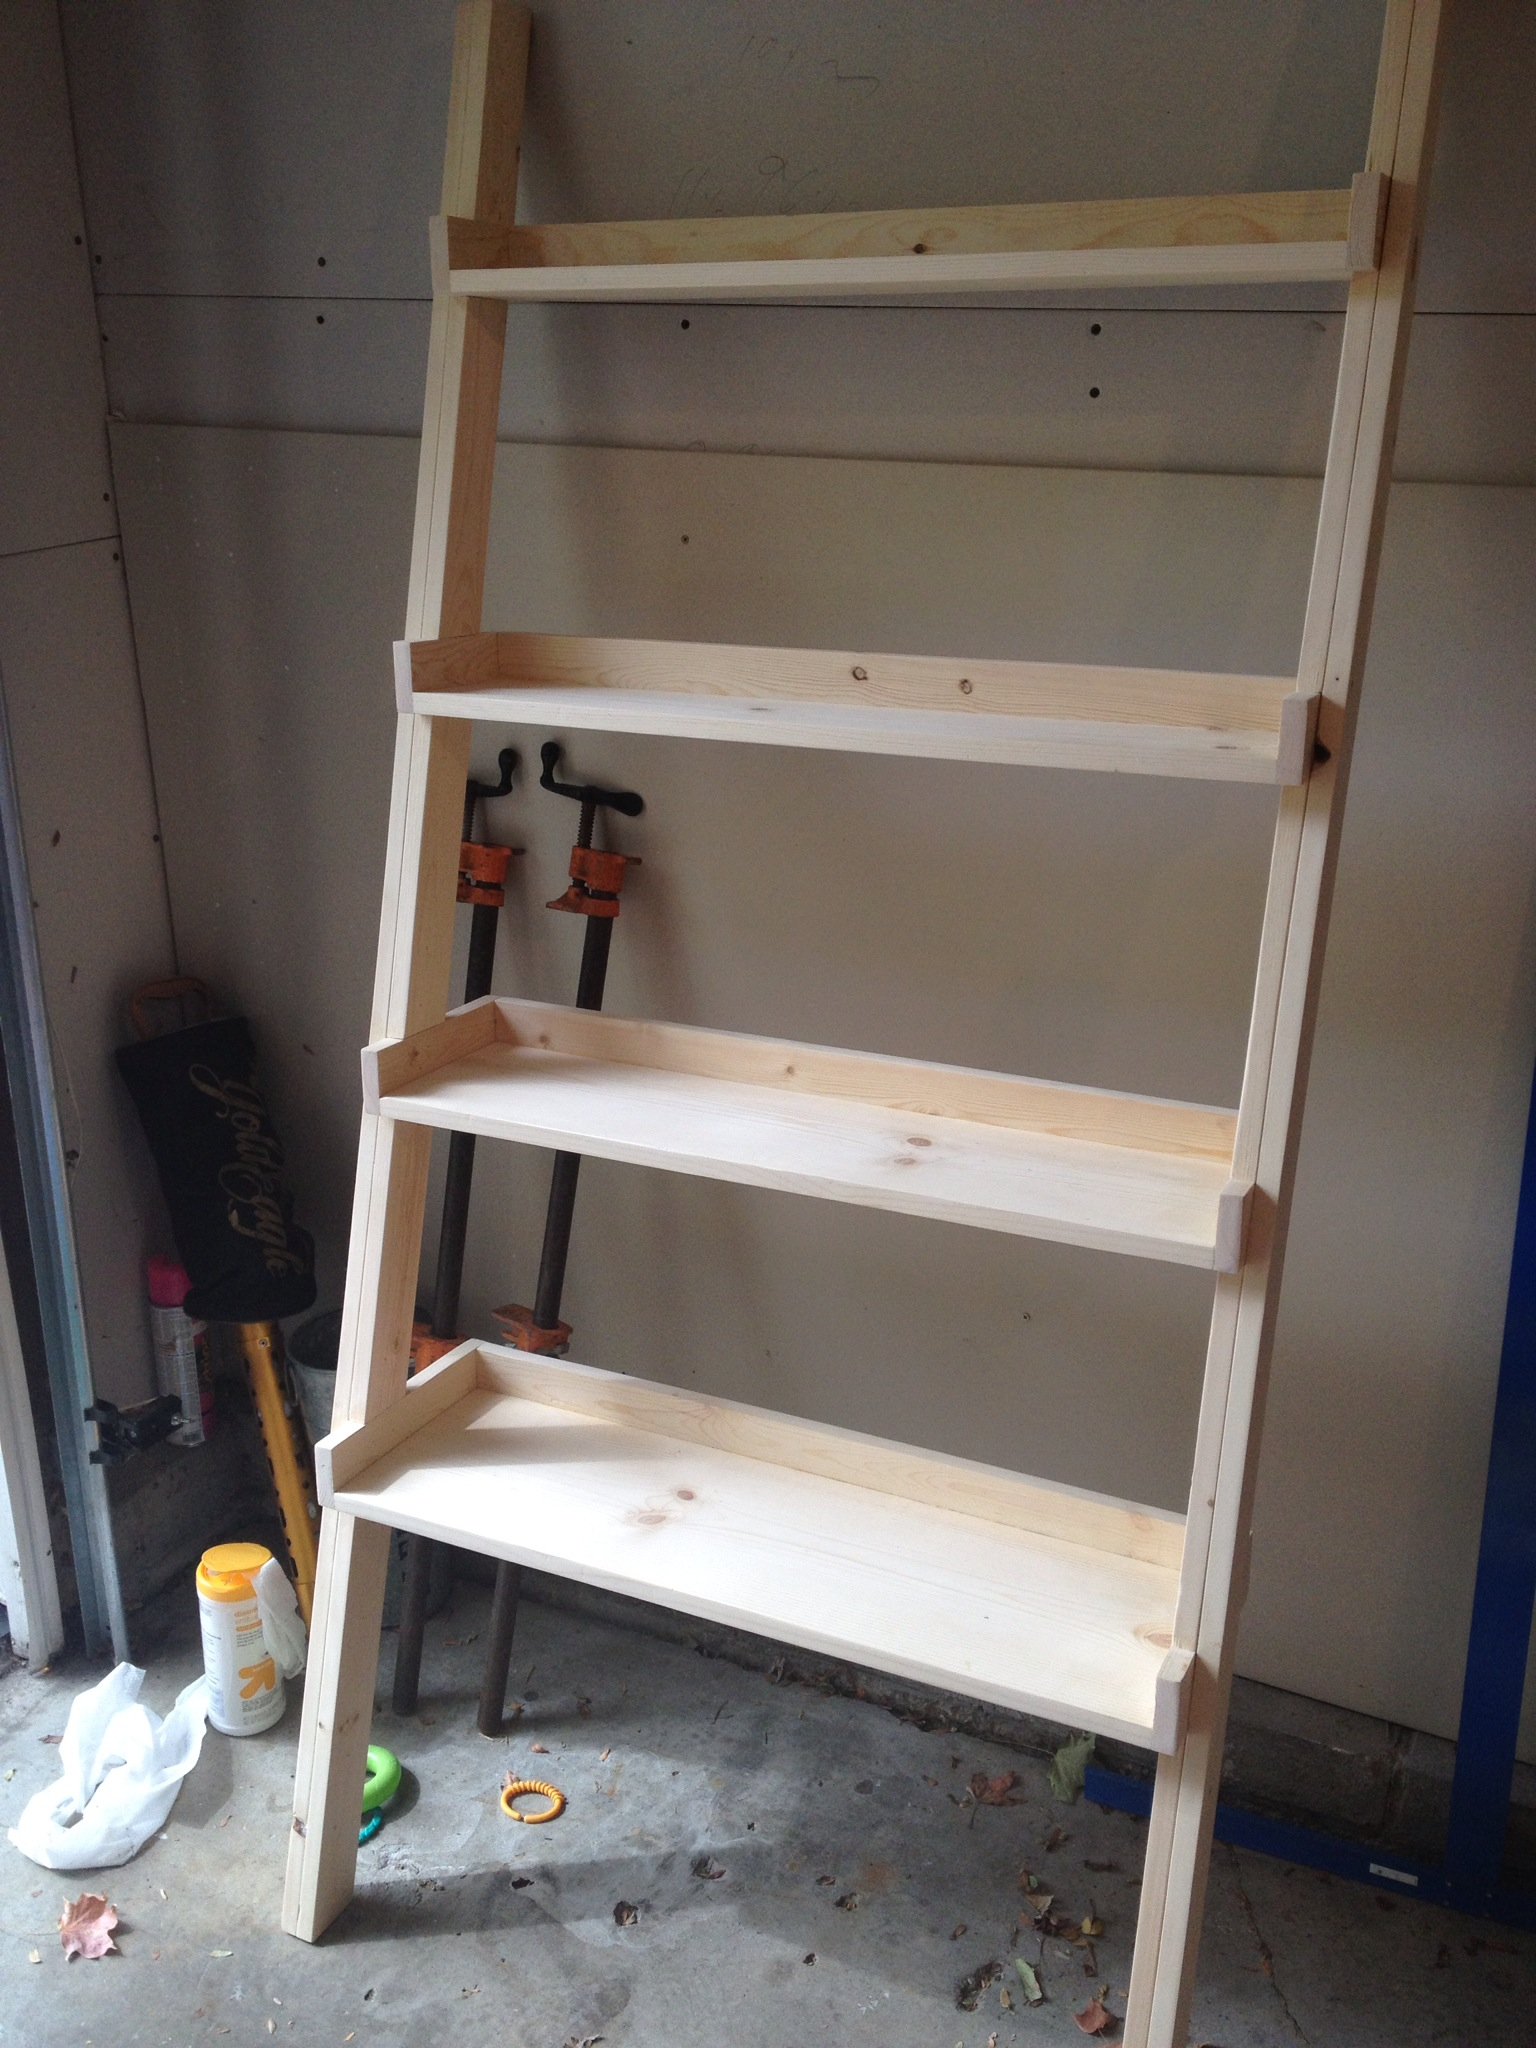 Bookcase Built Woodworking Plans likewise DIY Wall Mounted Shelves ...